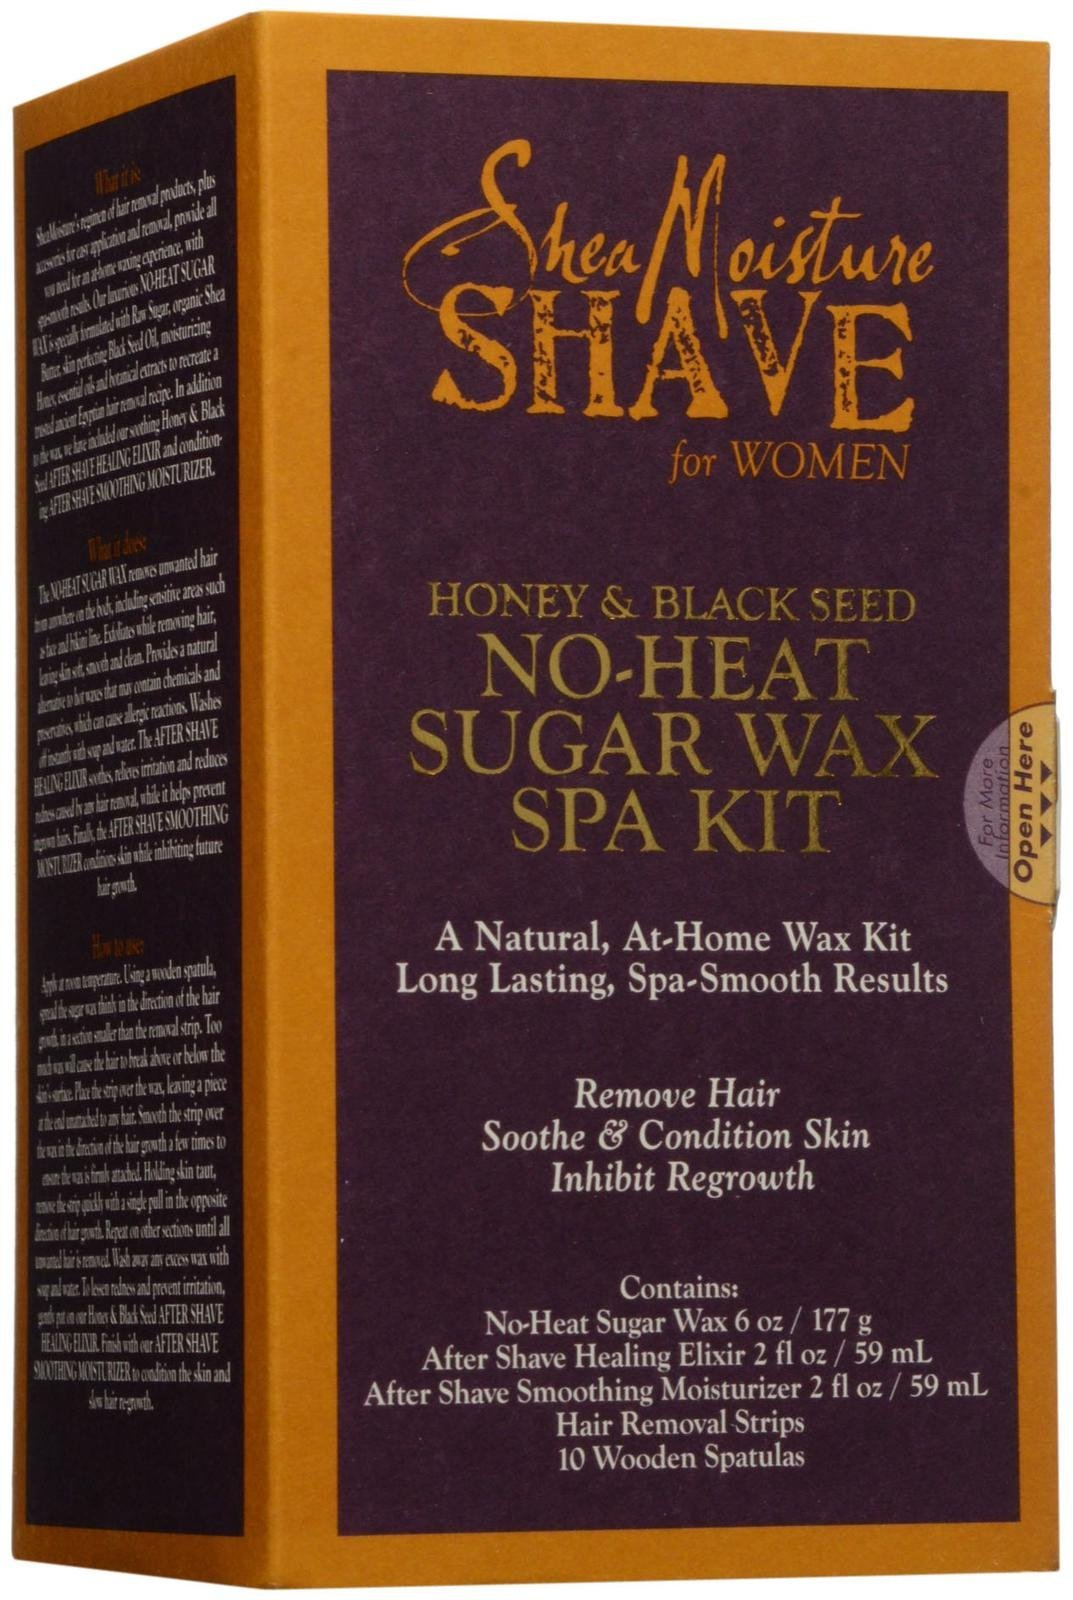 SheaMoisture Women's Honey & Black Seed Shave Kit - 12 oz by Shea Moisture